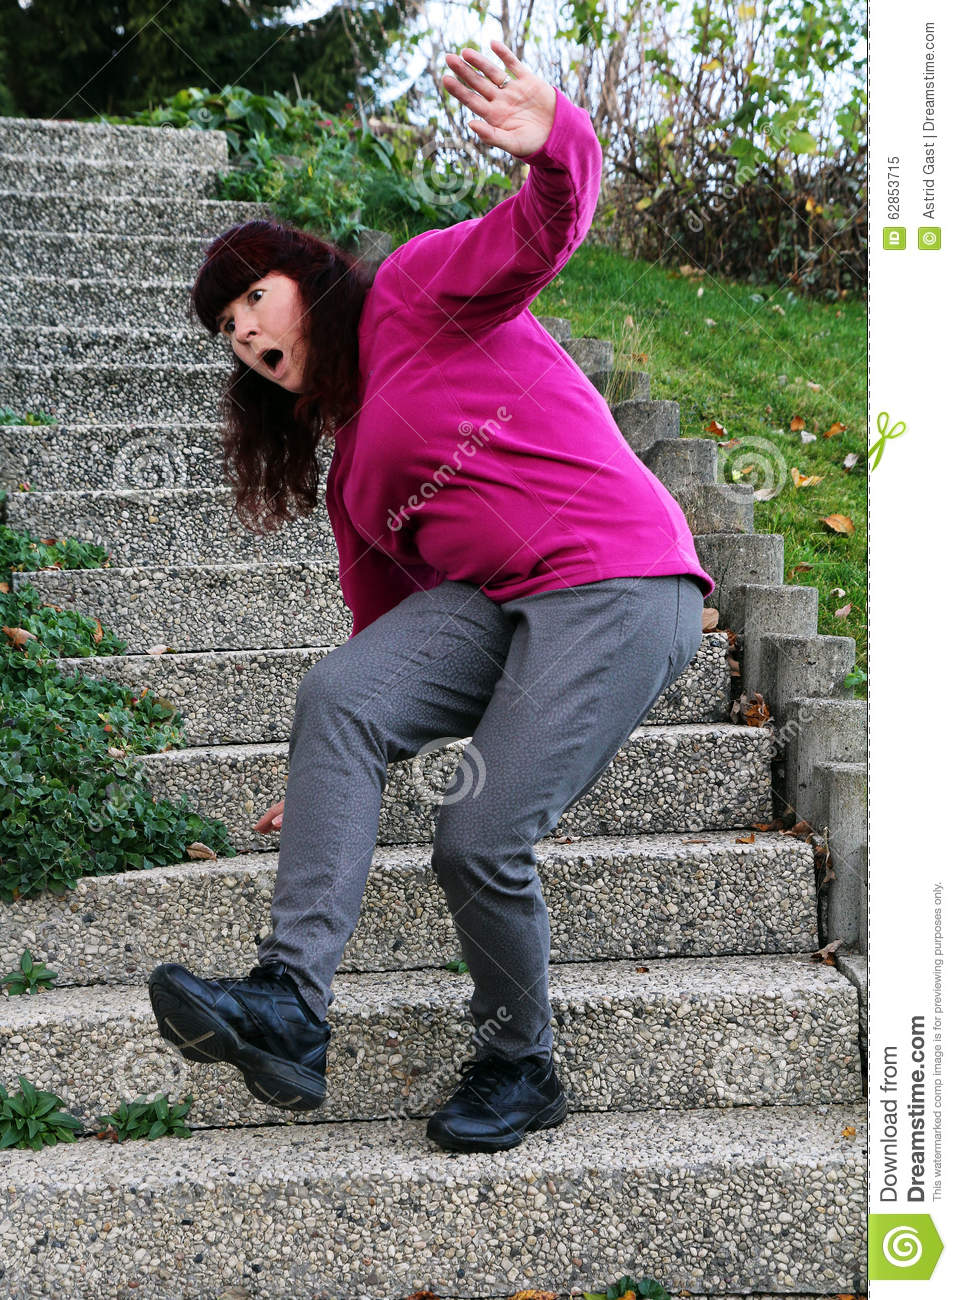 A Woman Stumbles On A Staircase Stock Image - Image of injury